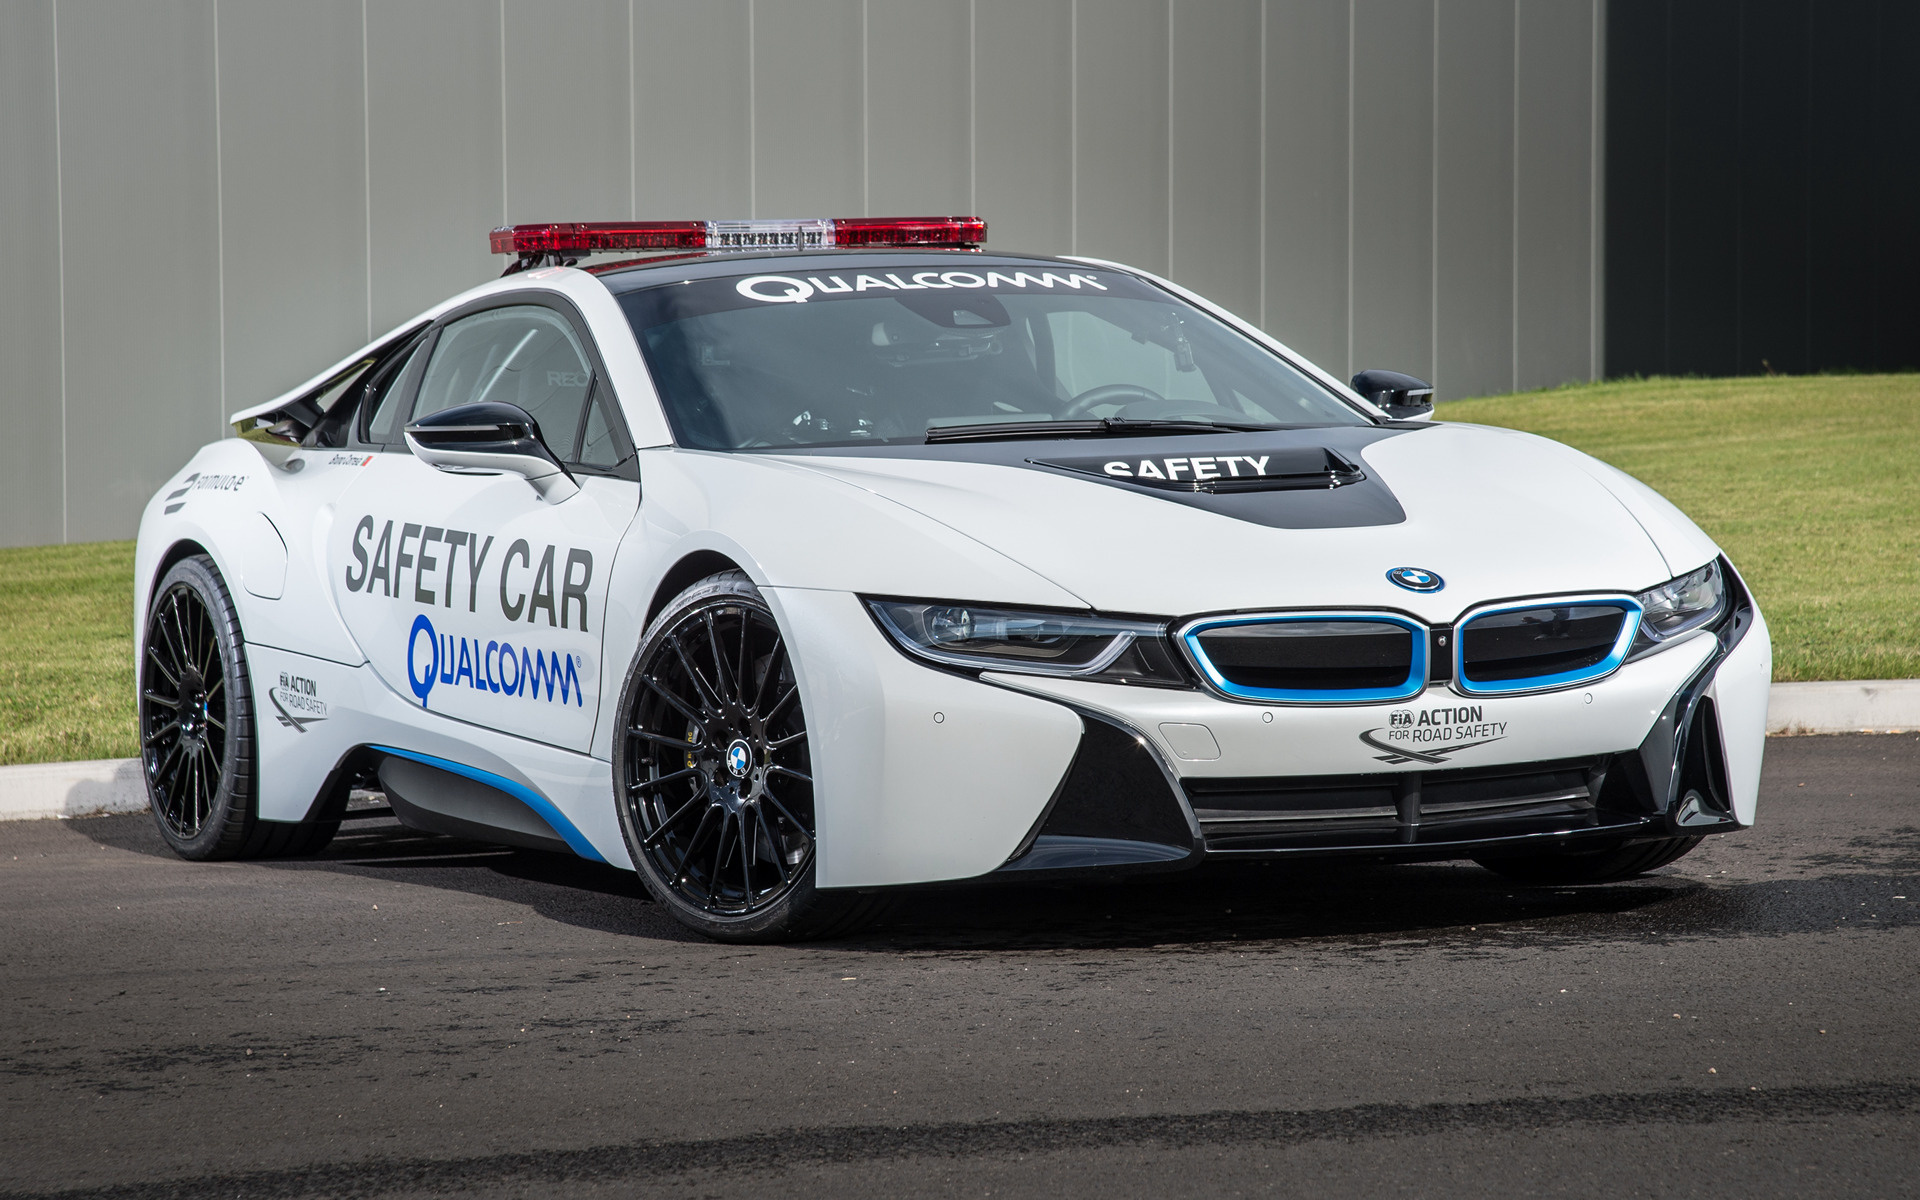 2014 bmw i8 formula e safety car wallpapers and hd. Black Bedroom Furniture Sets. Home Design Ideas